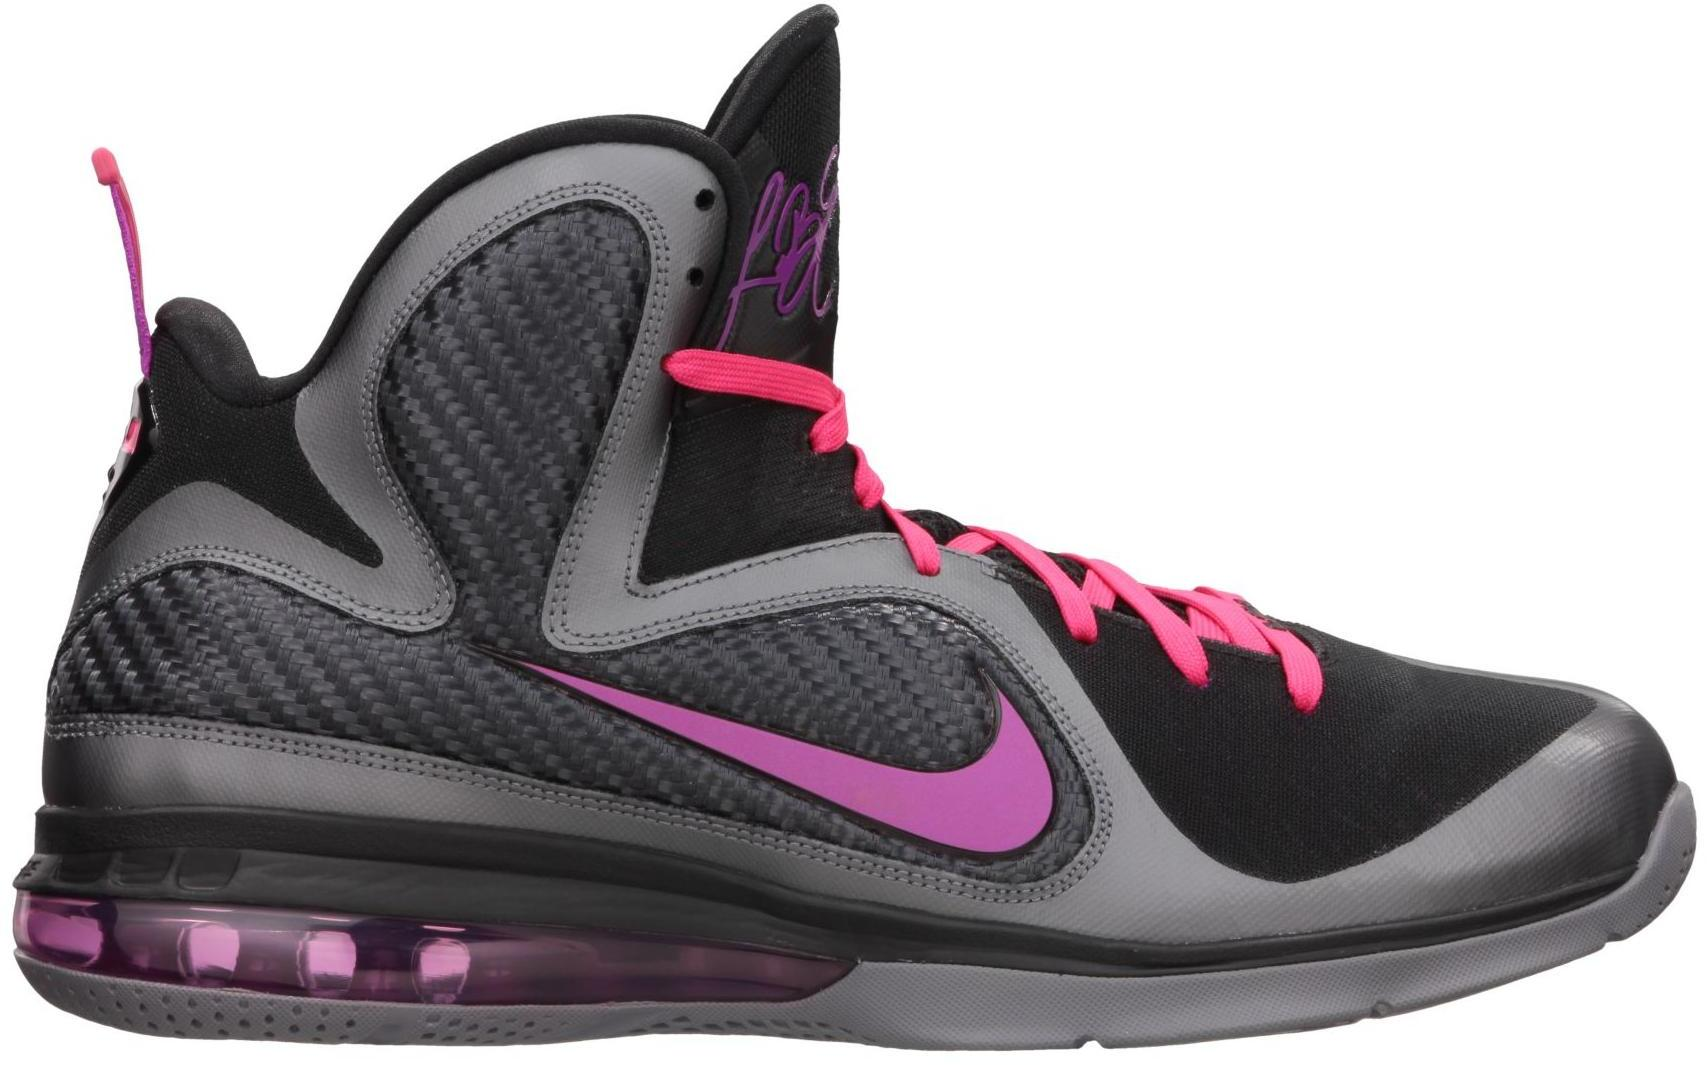 Nike LeBron 9 Miami Nights - 469764-002